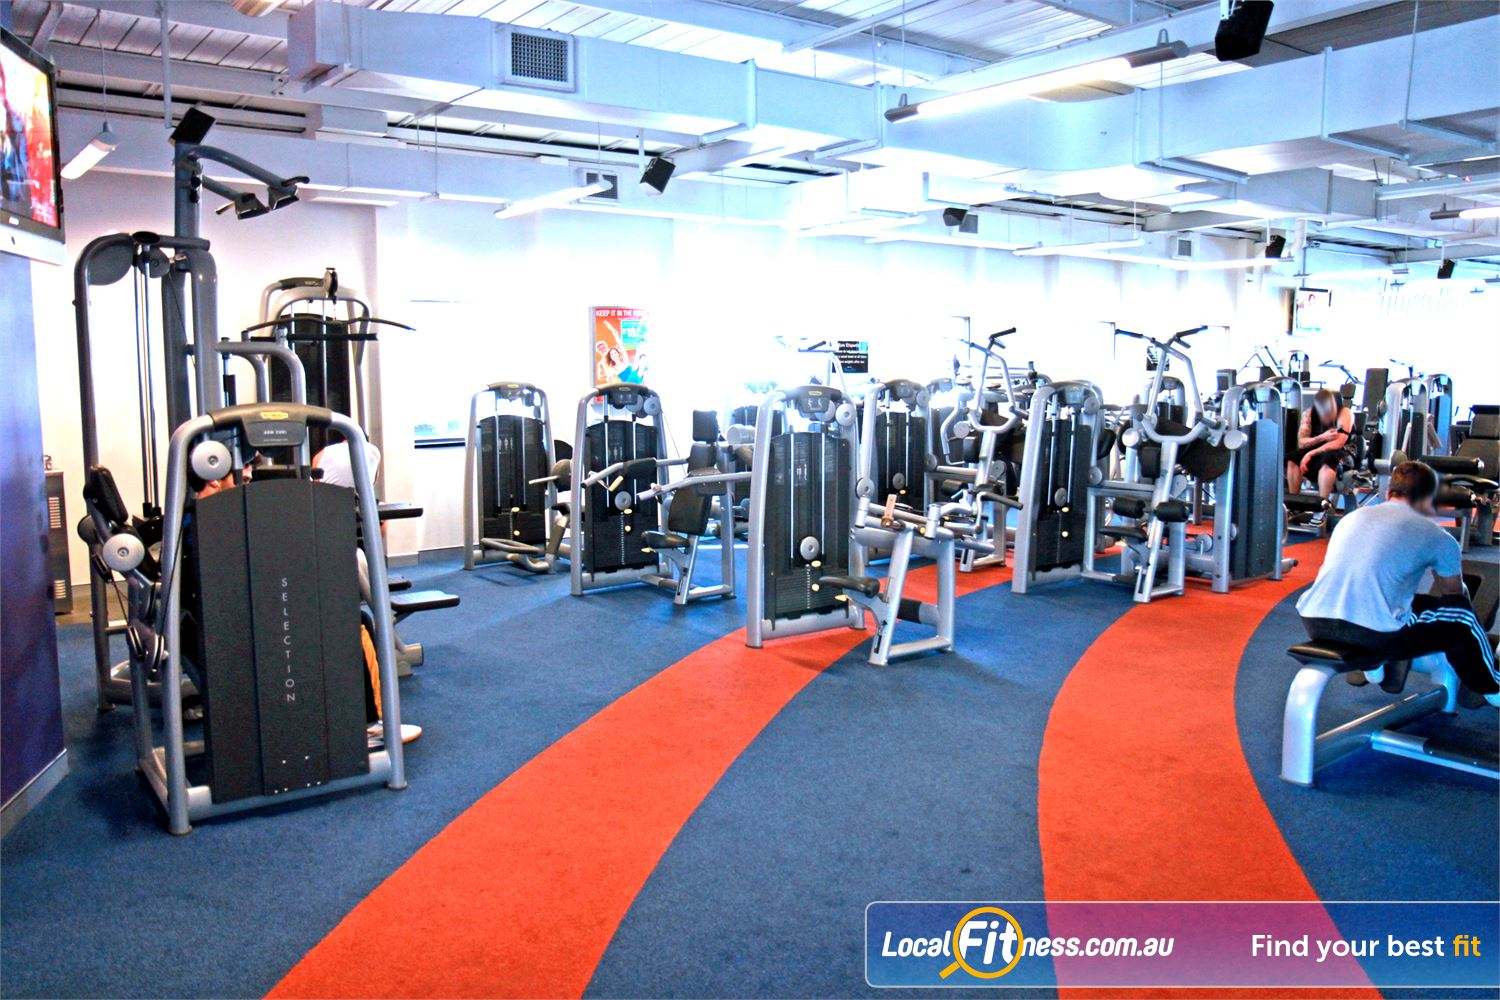 Goodlife Health Clubs Innaloo State of the art equipment from Technogym in our Innaloo gym.